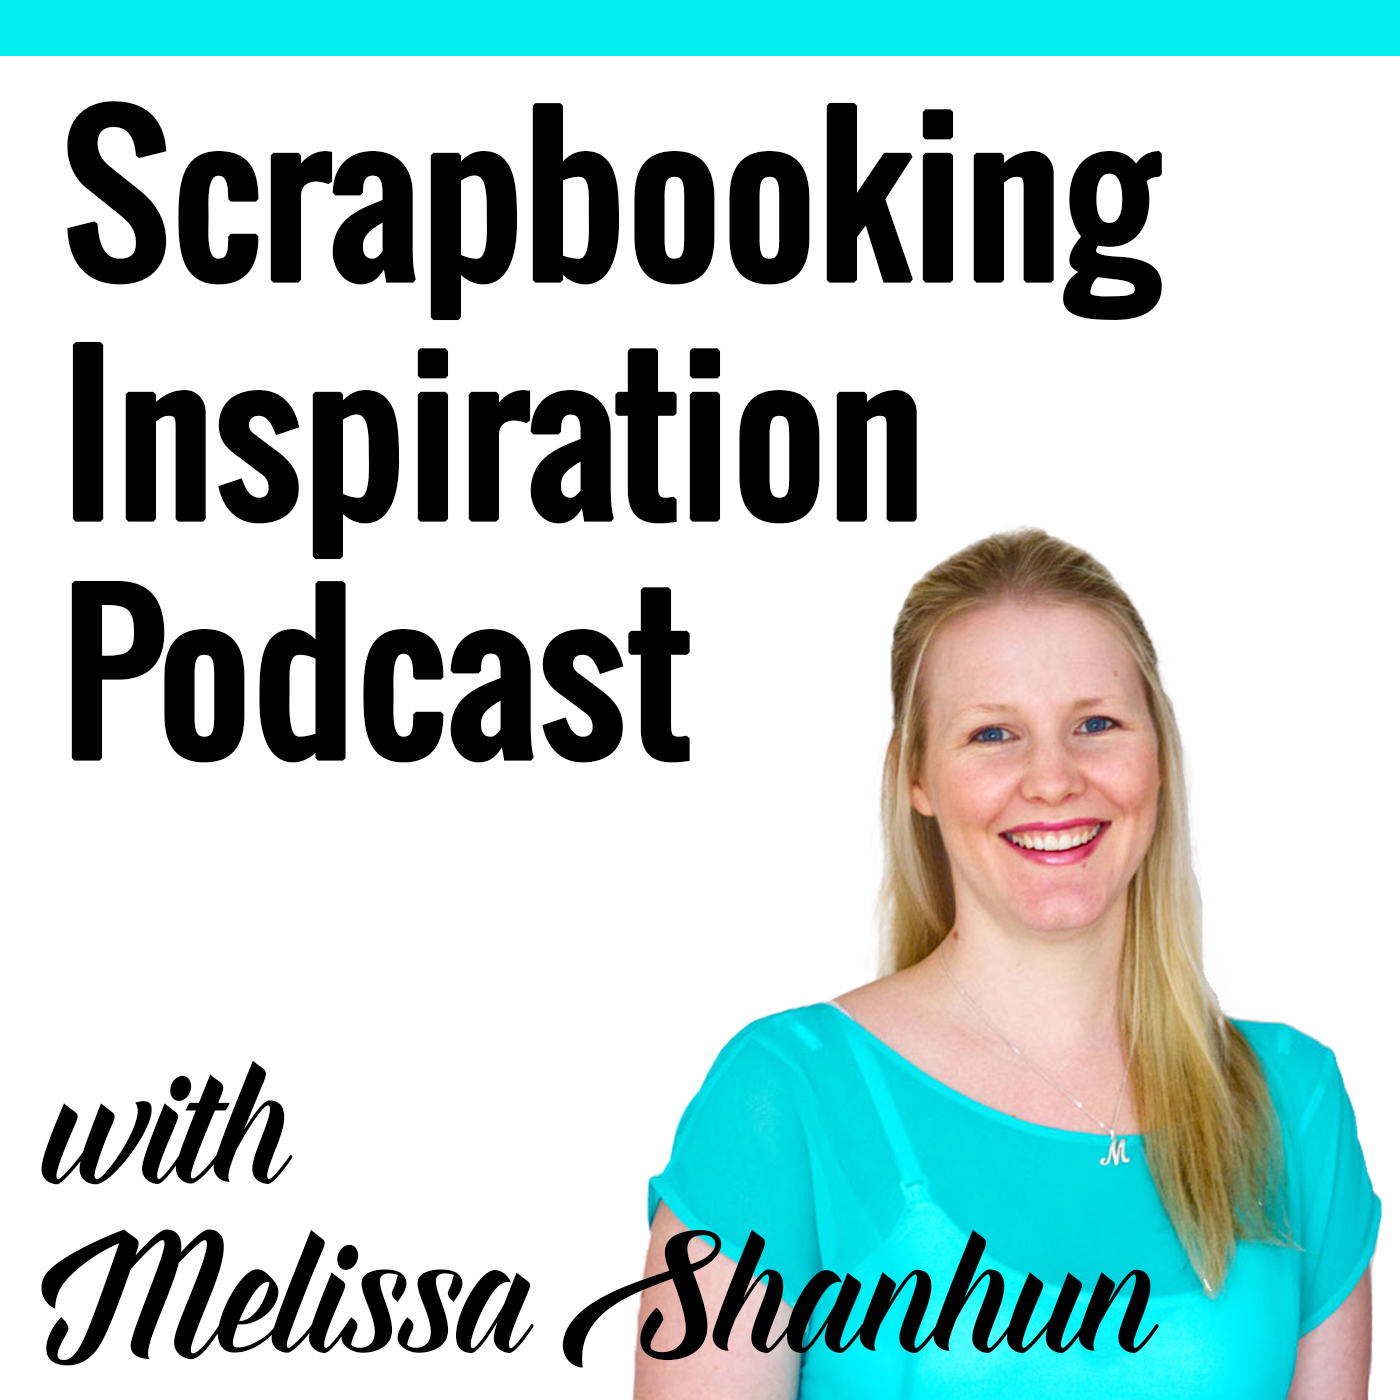 Scrapbooking Inspiration Podcast: Digital Scrapbooking HQ